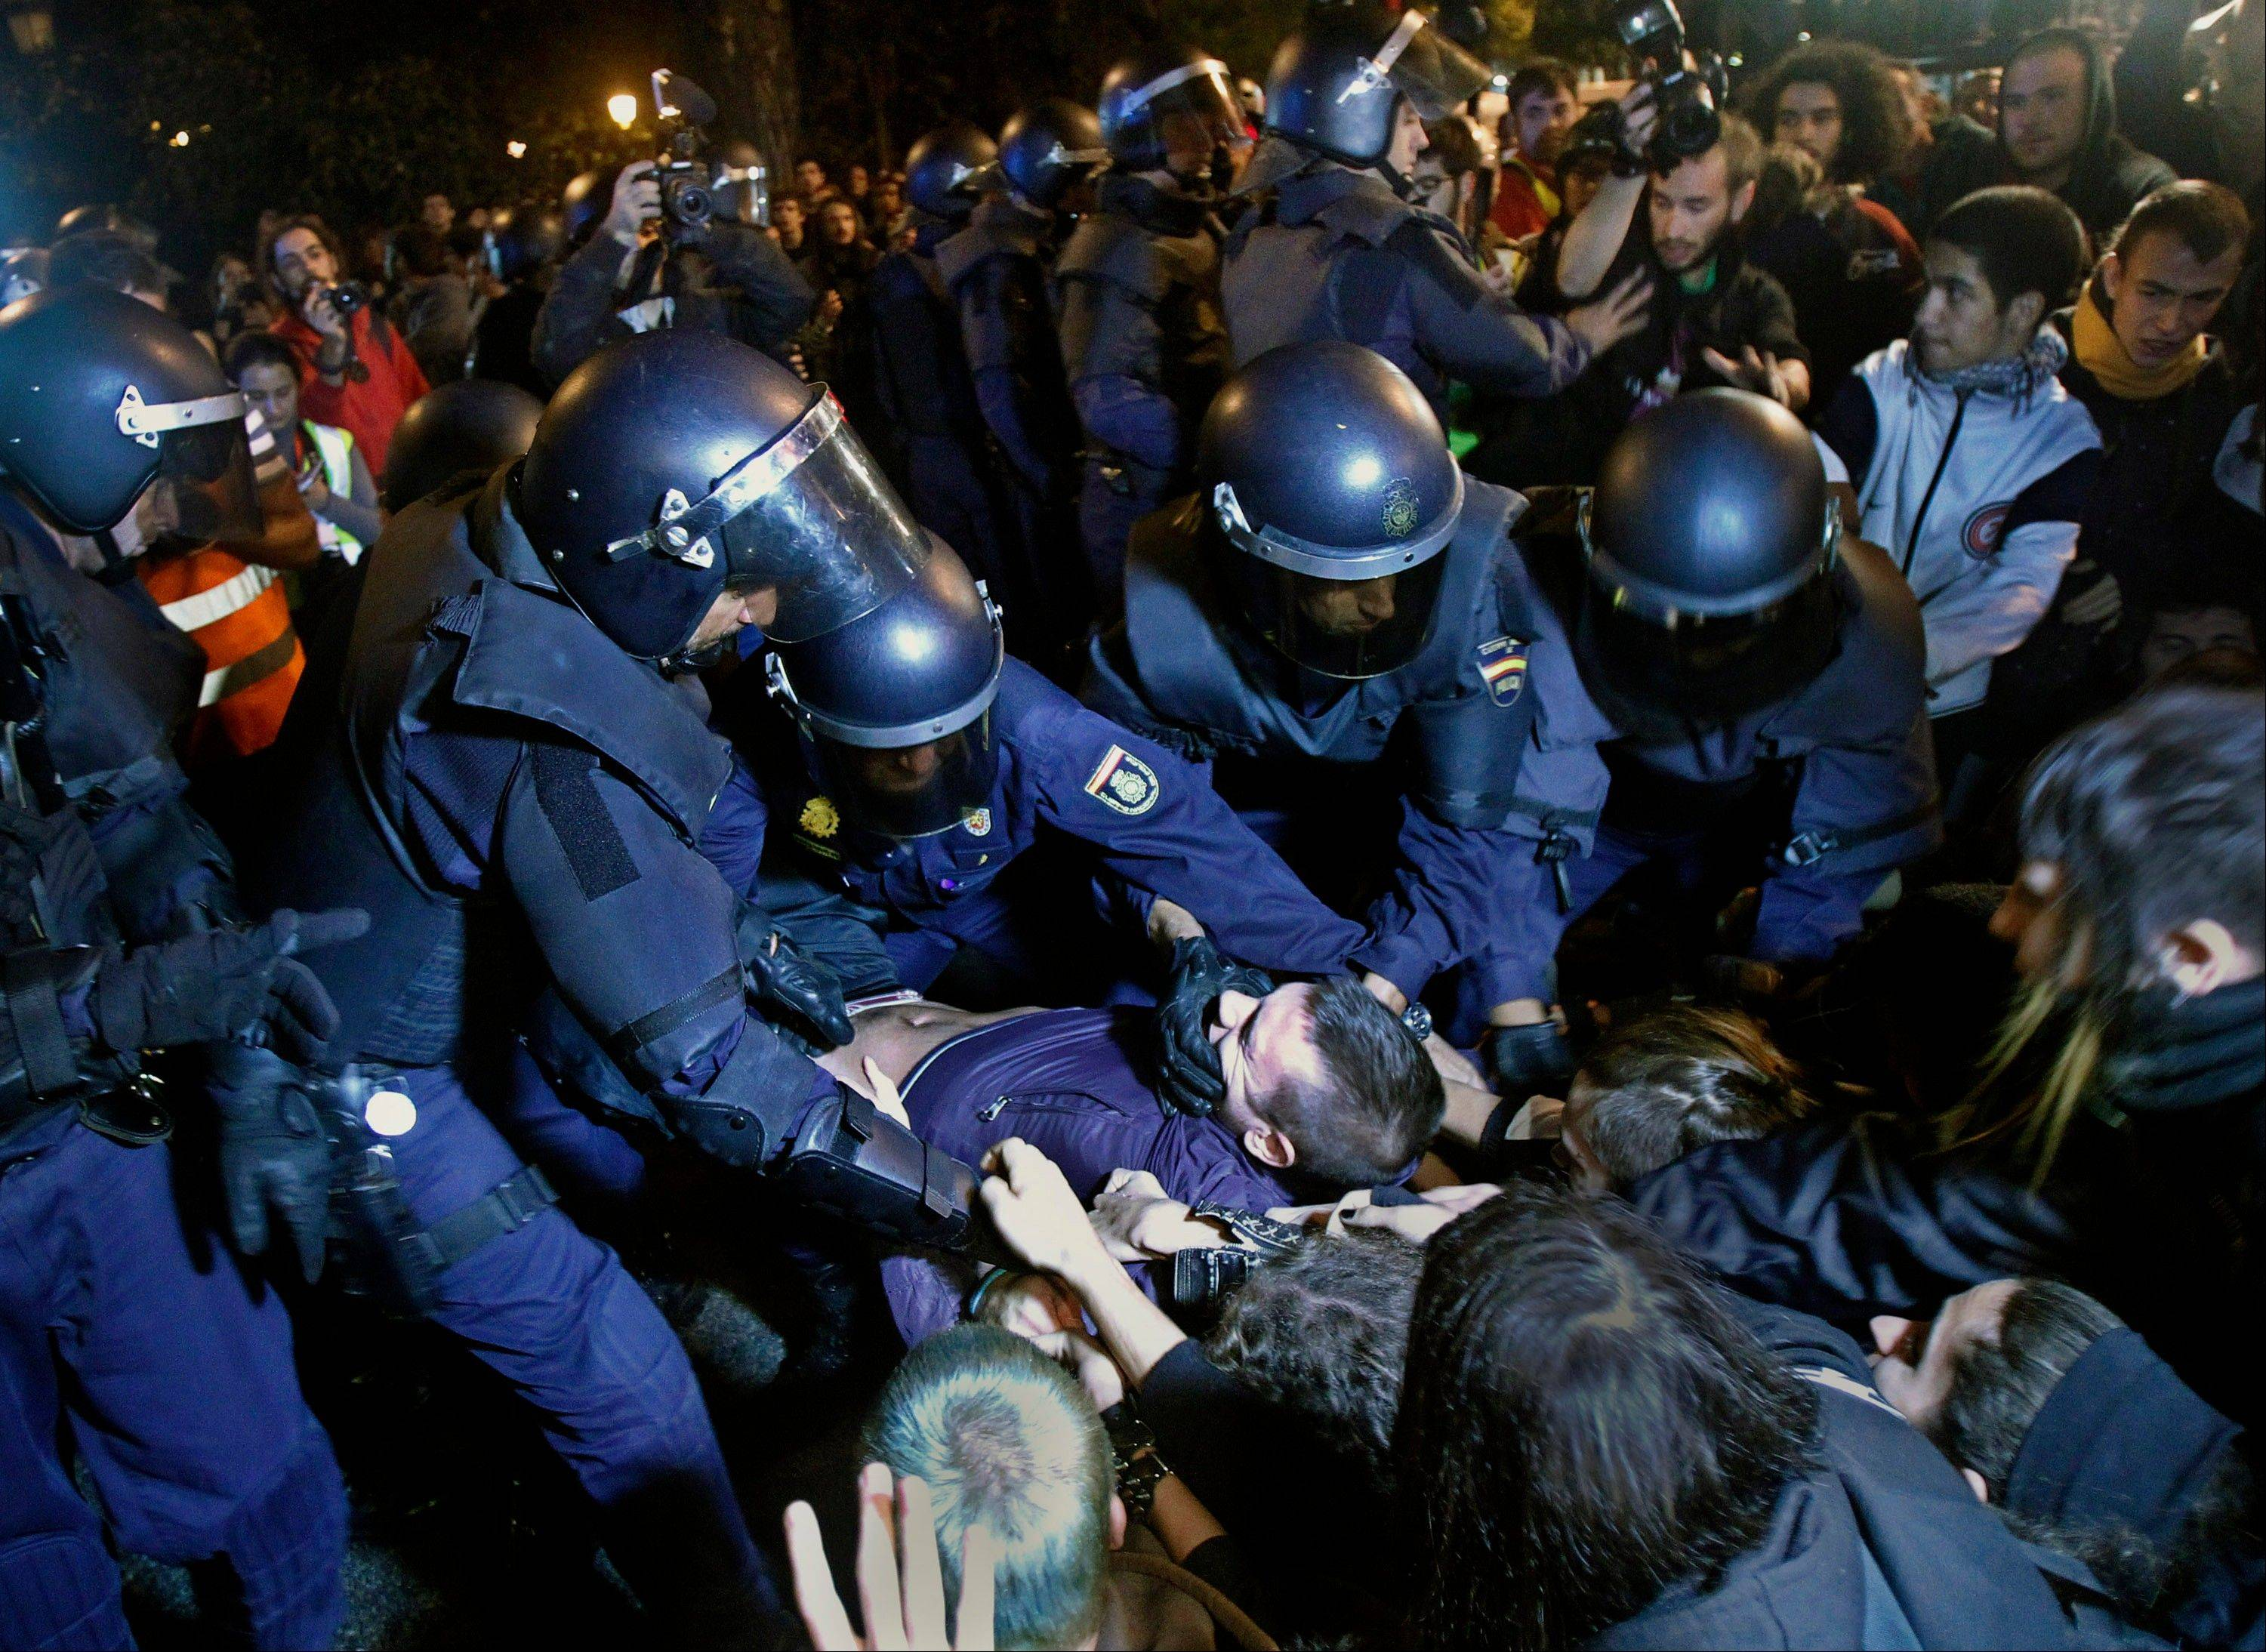 Police clash with protesters during a demonstration at the parliament against austerity measures announced by the Spanish government in Madrid, Spain, Wednesday.